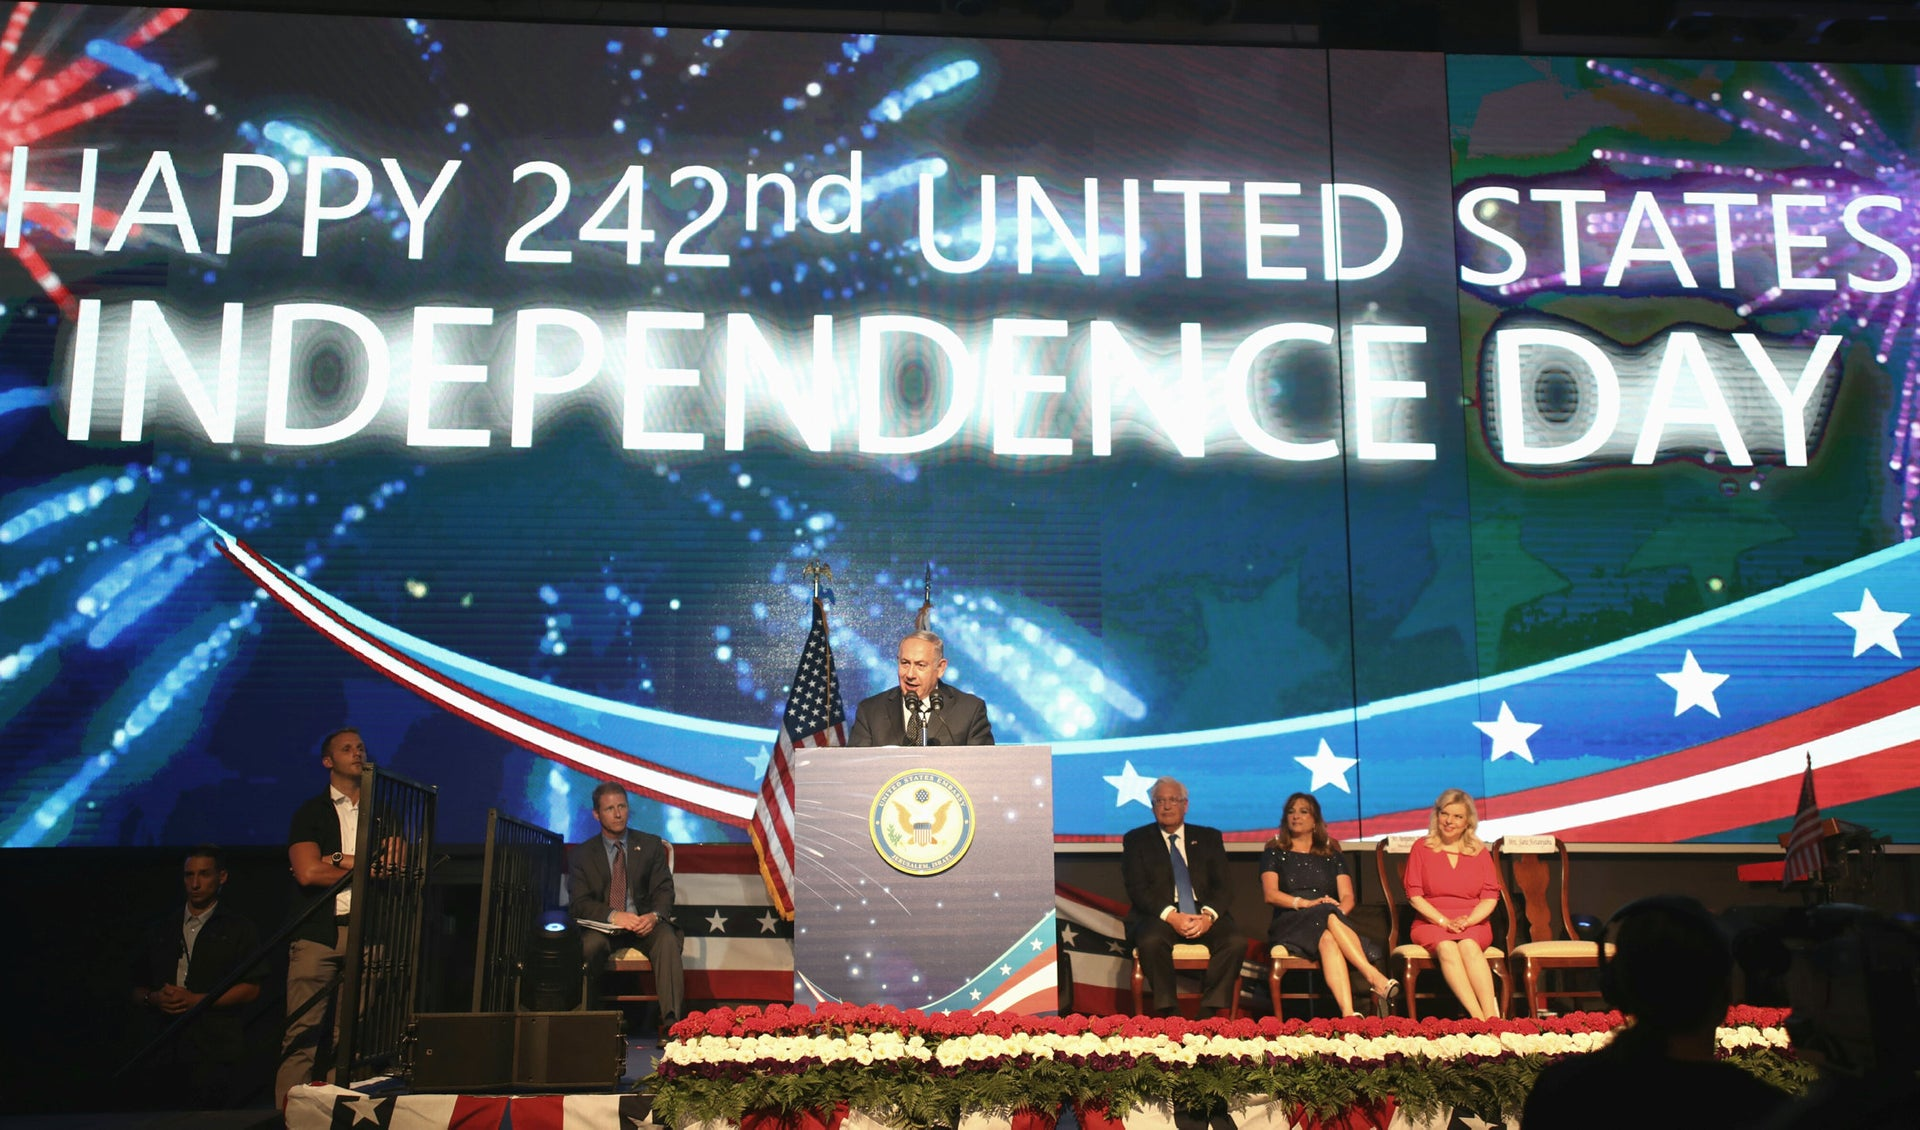 Prime Minister Benjamin Netanyahu at an event in honor of the 242nd Independence Day of the United States, July 2018